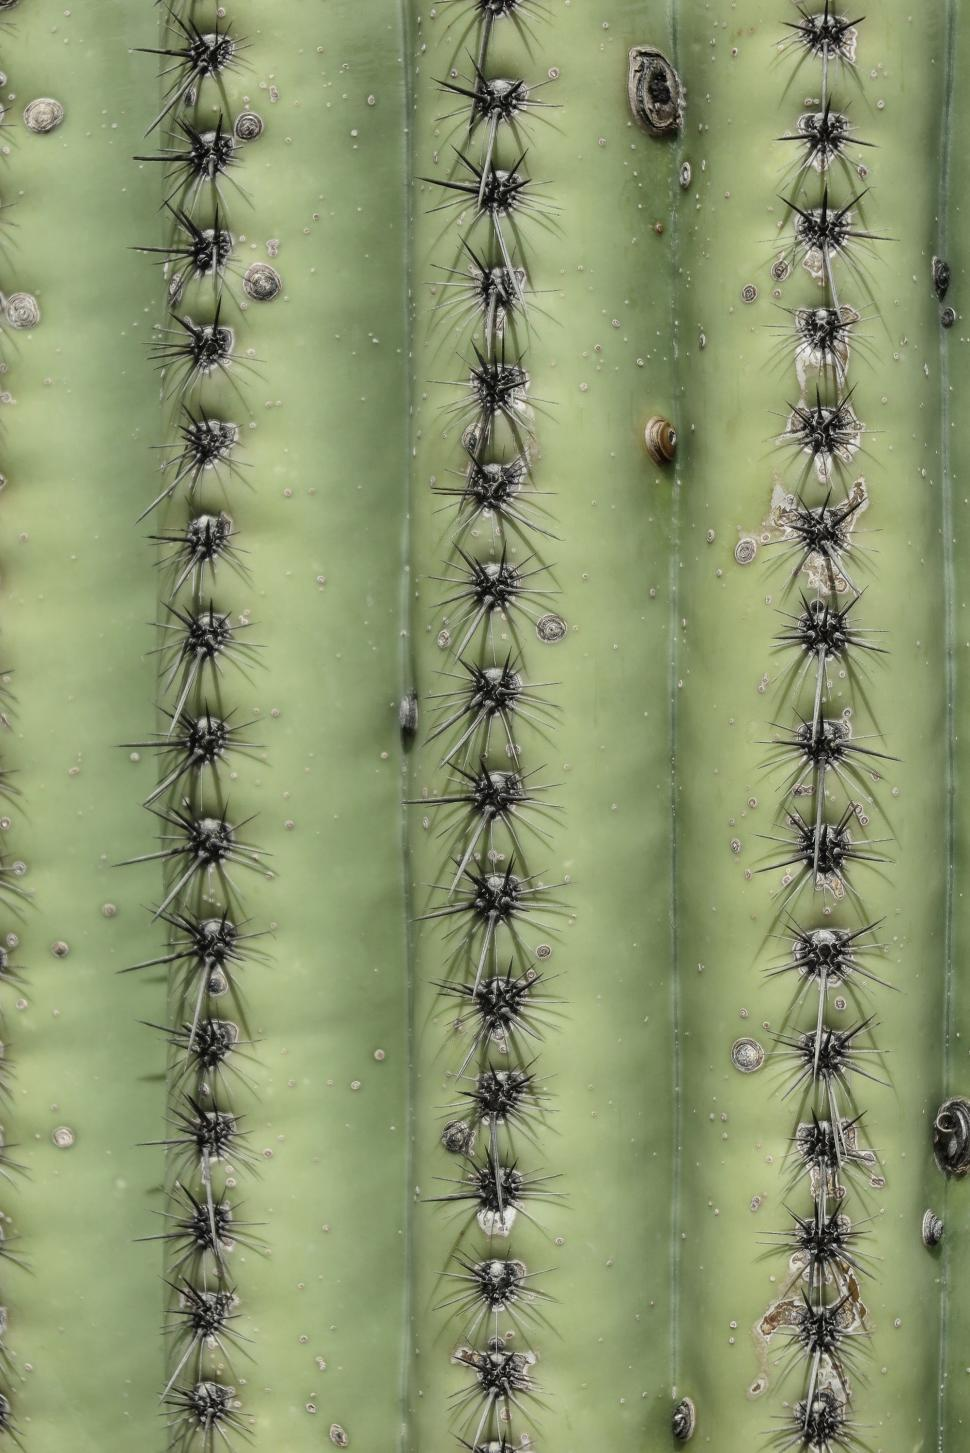 Download Free Stock HD Photo of Ribs of a saguaro cactus Online